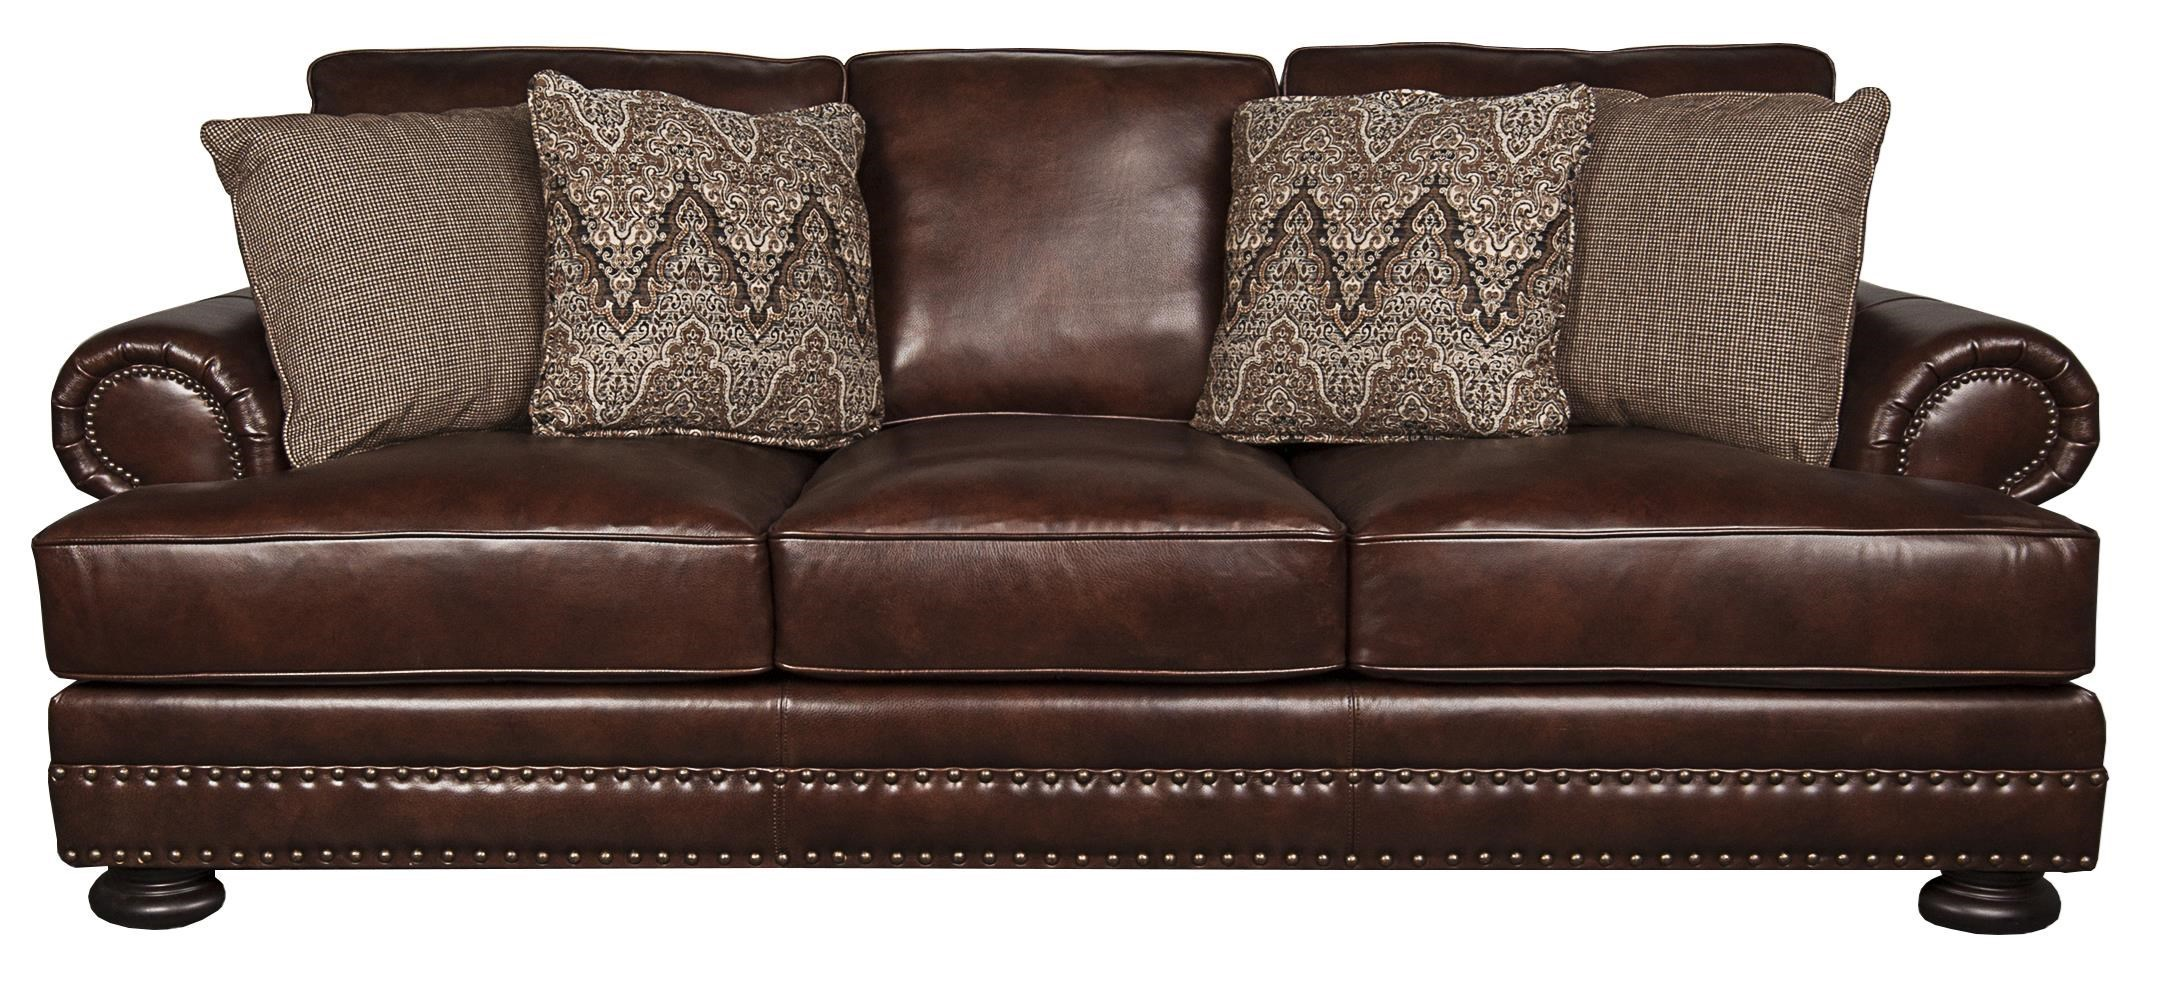 Charmant Bernhardt FosterFoster 100% Leather Sofa ...